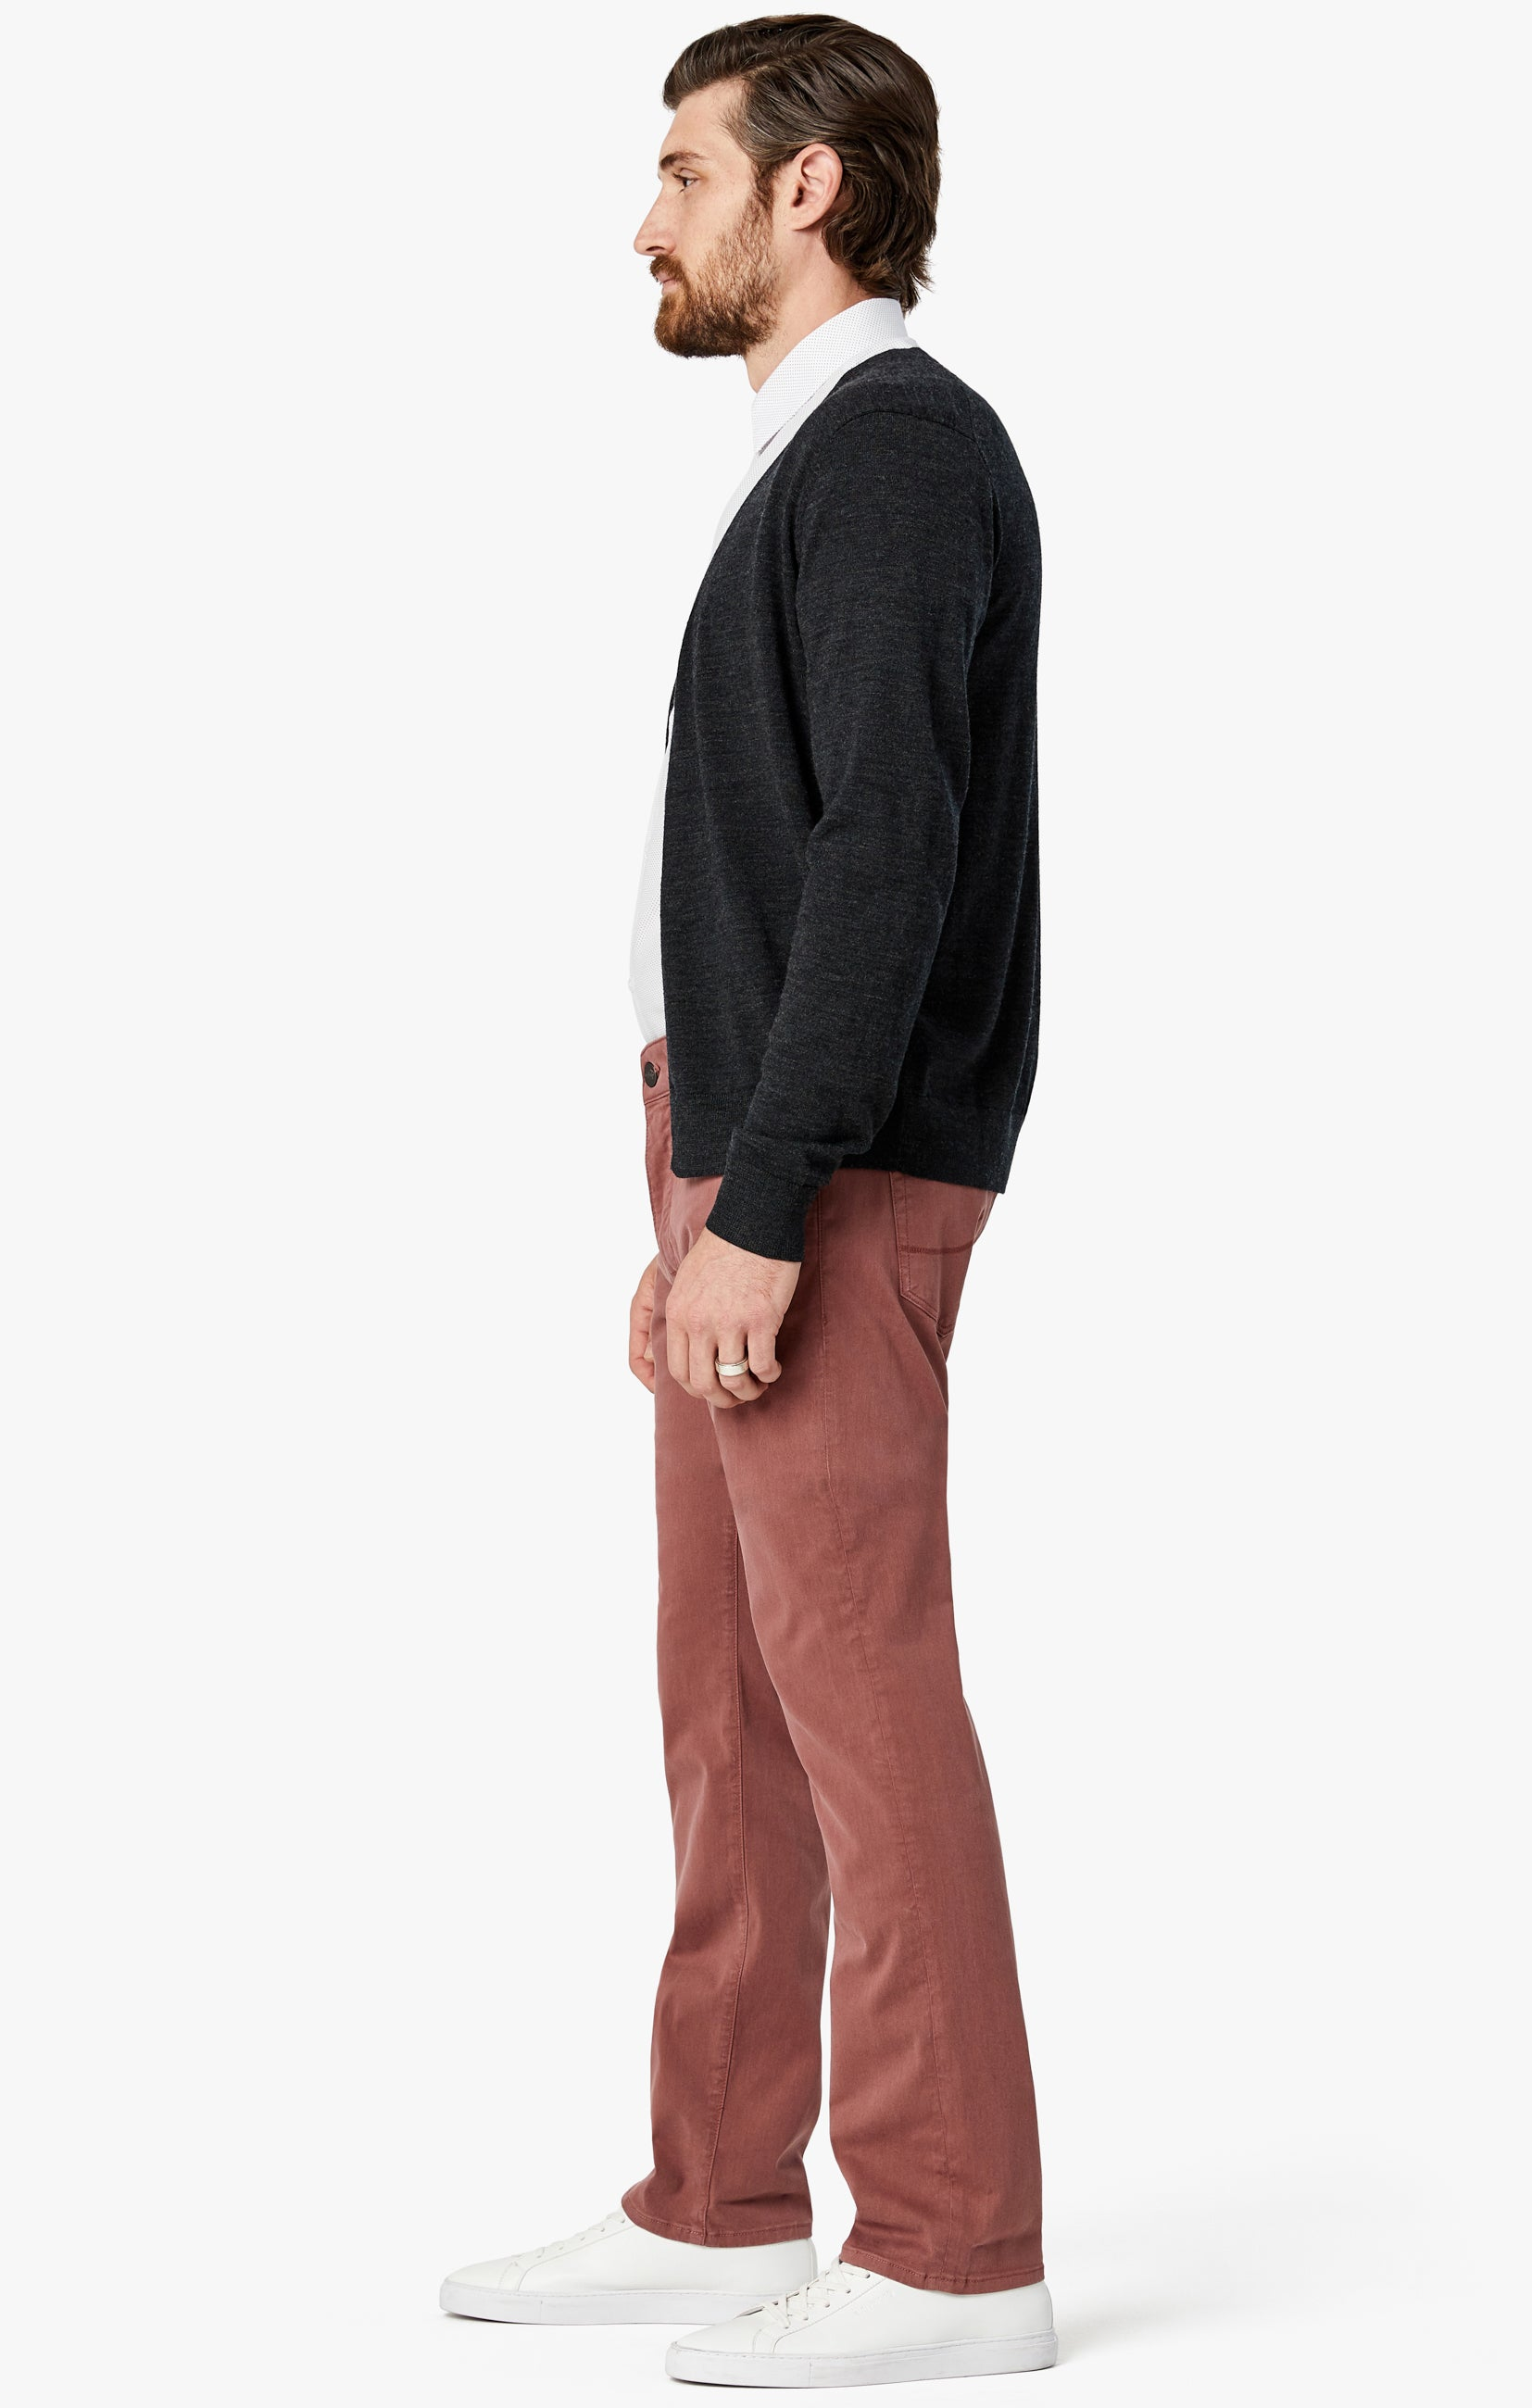 Courage Straight Leg Pants in Berry Twill Image 5